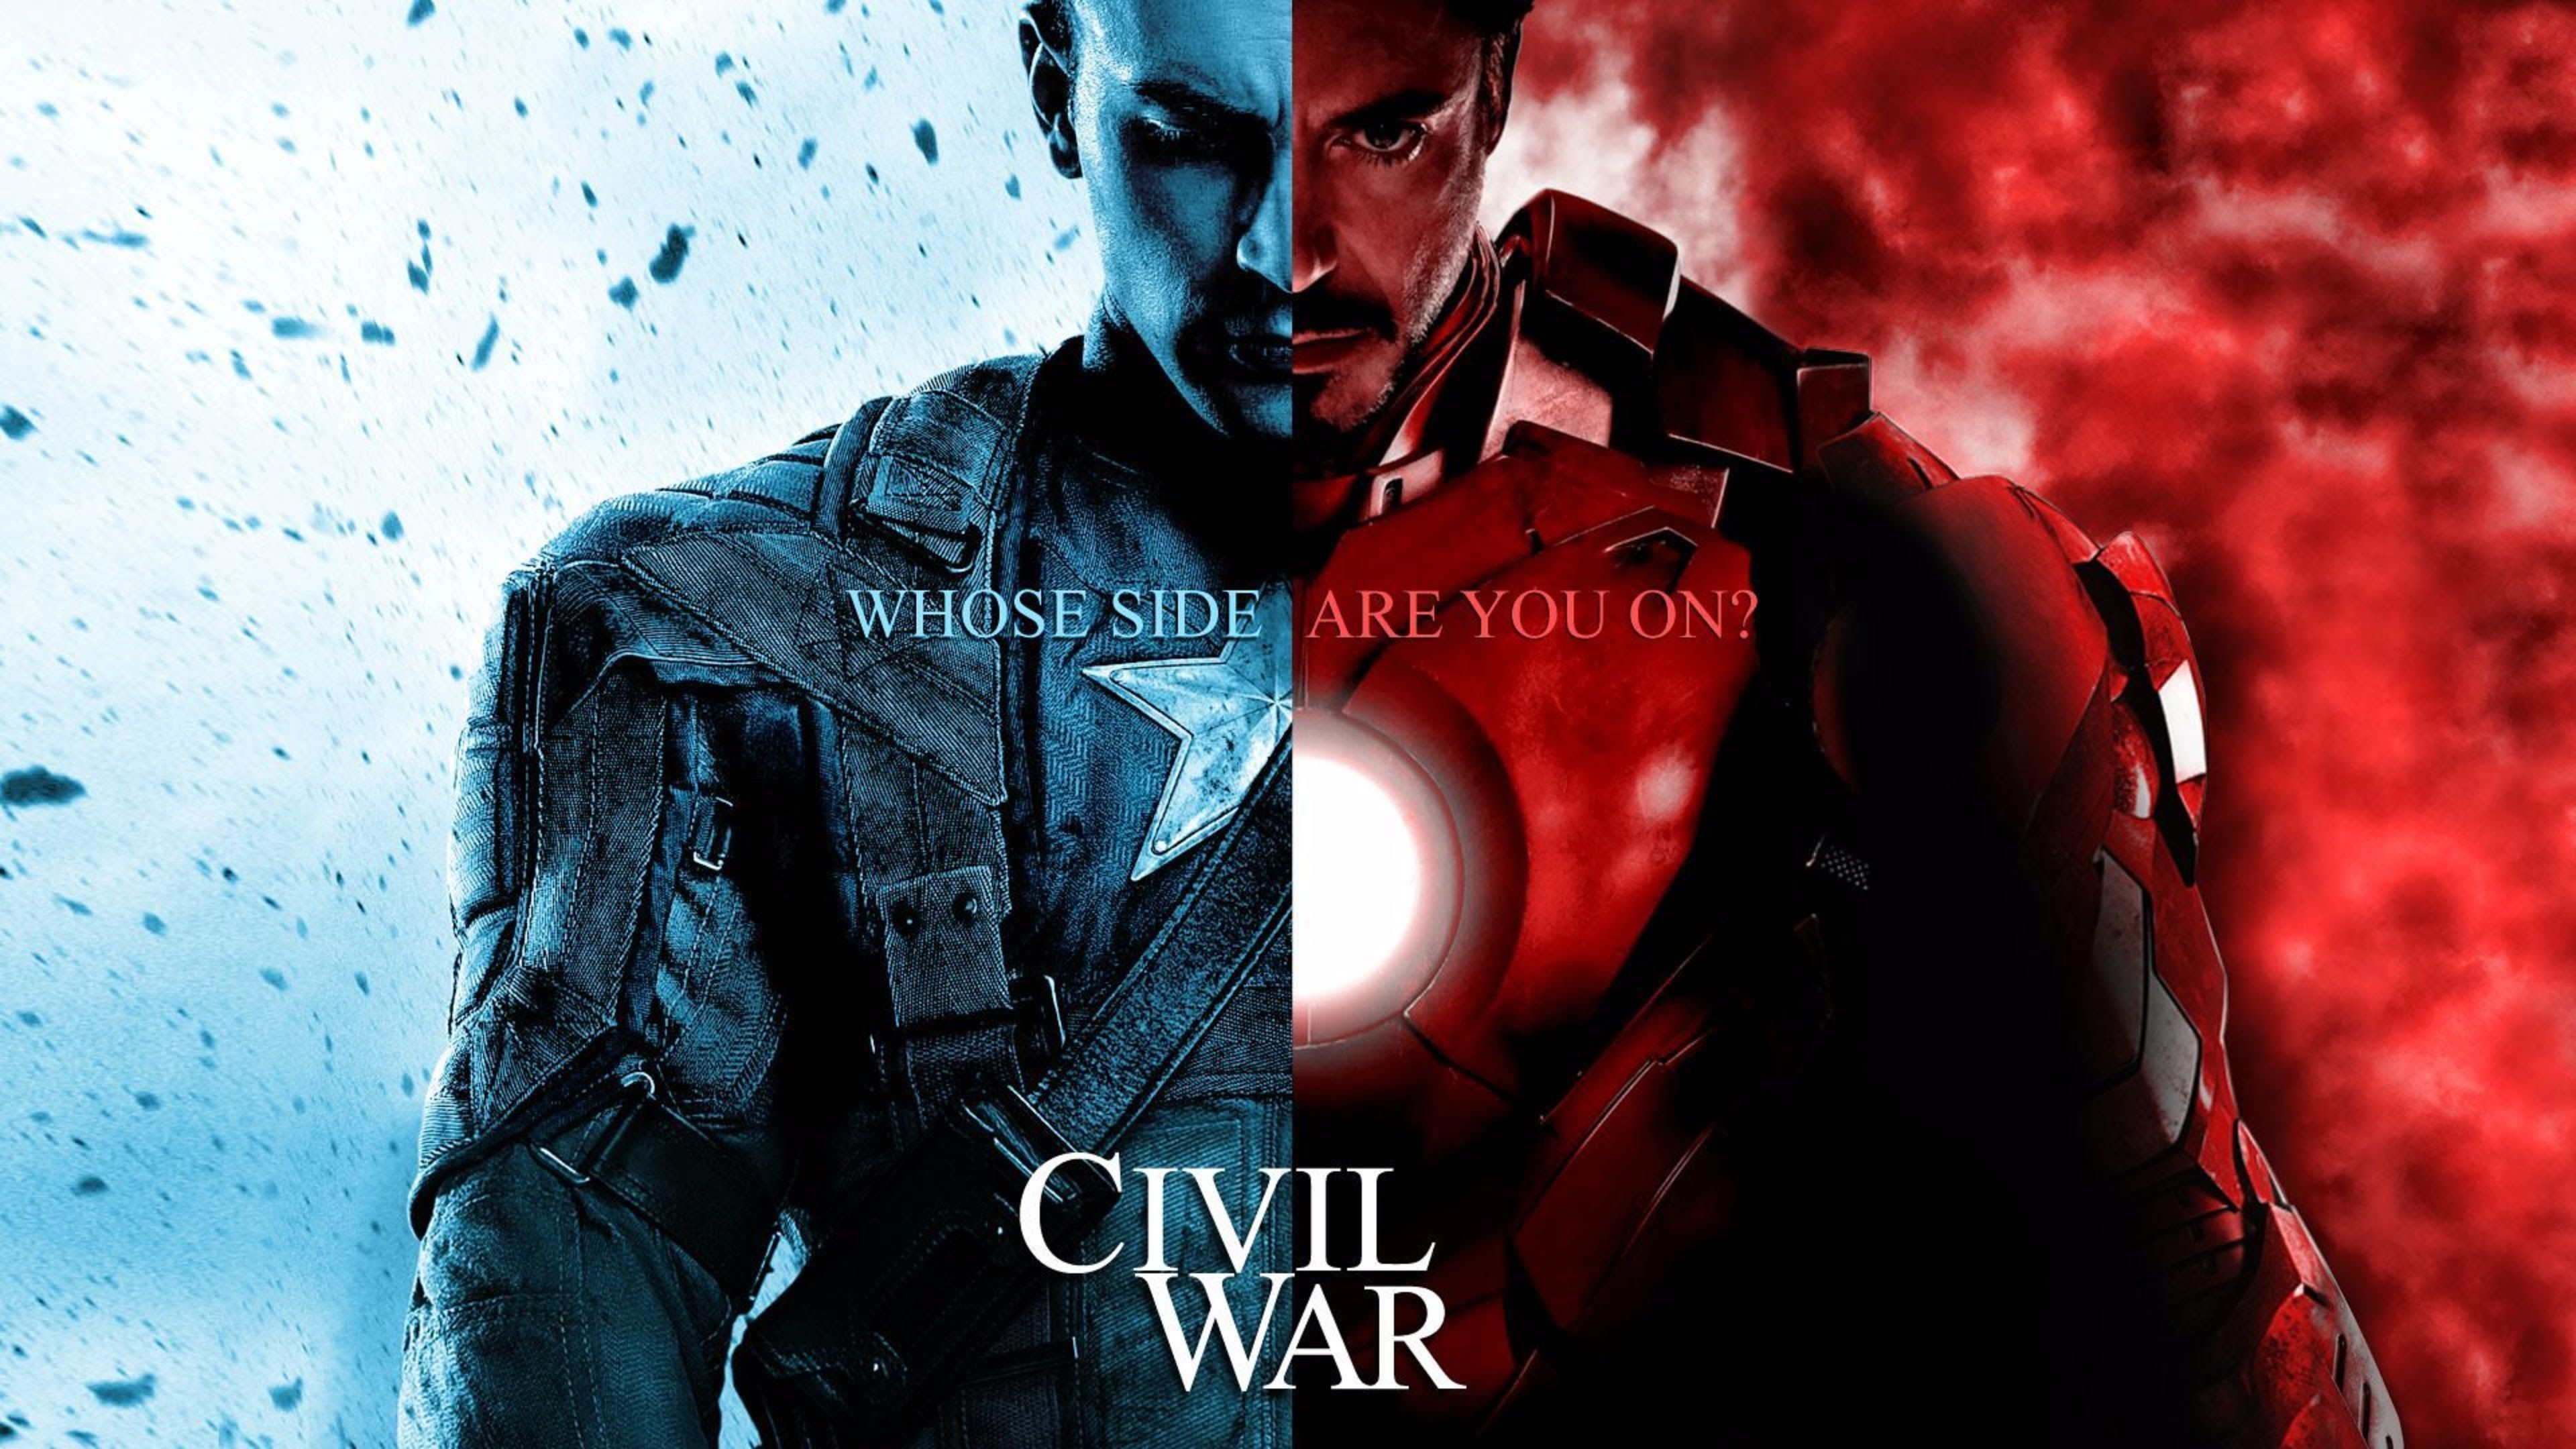 Captain America Vs Iron Man Civil War Wallpaper Pop Culture